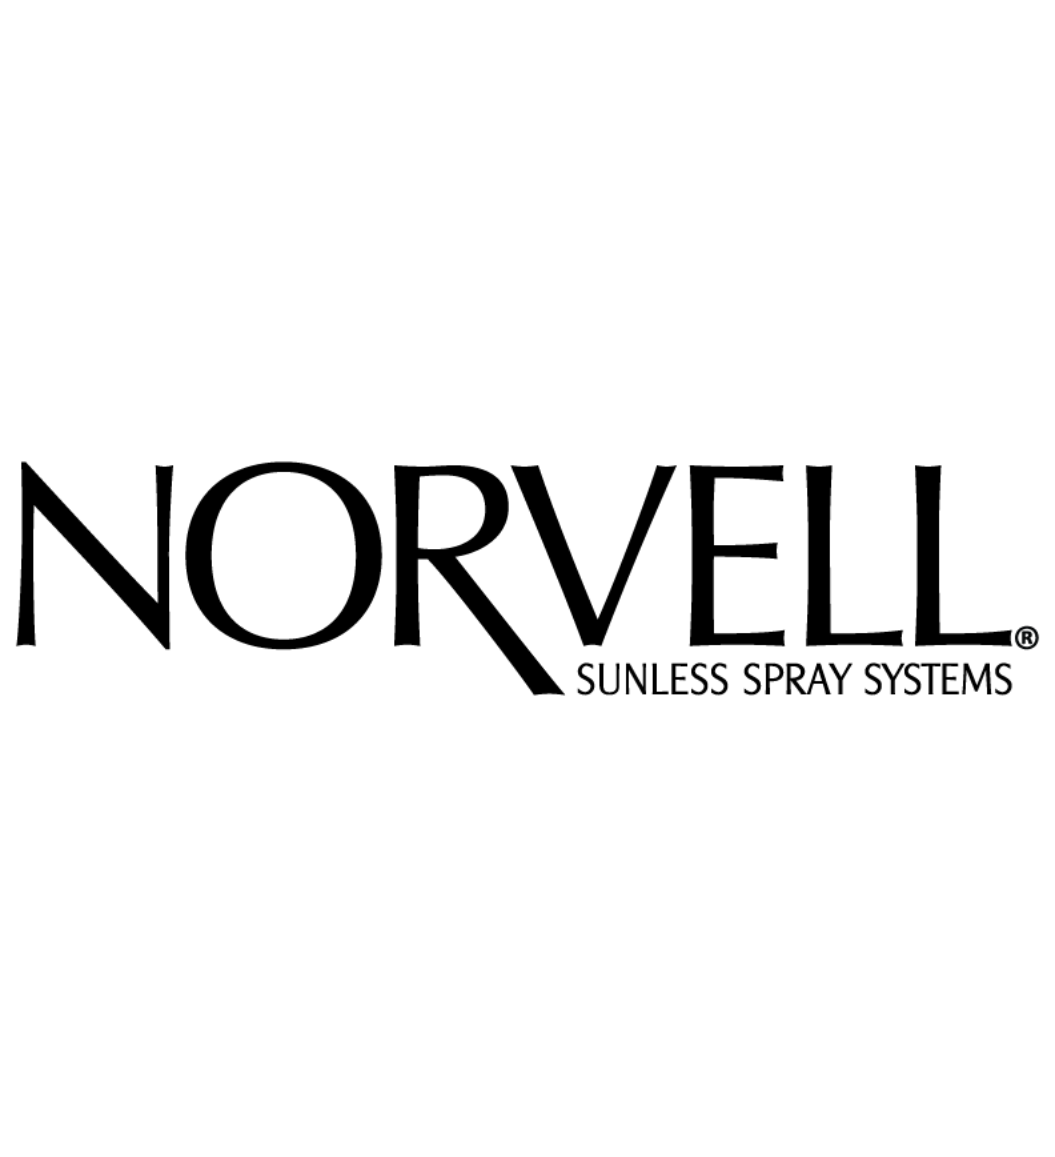 Norvell-wedding-montreal-the-bridal-sanctuary-spray-tan-bachelorette.png